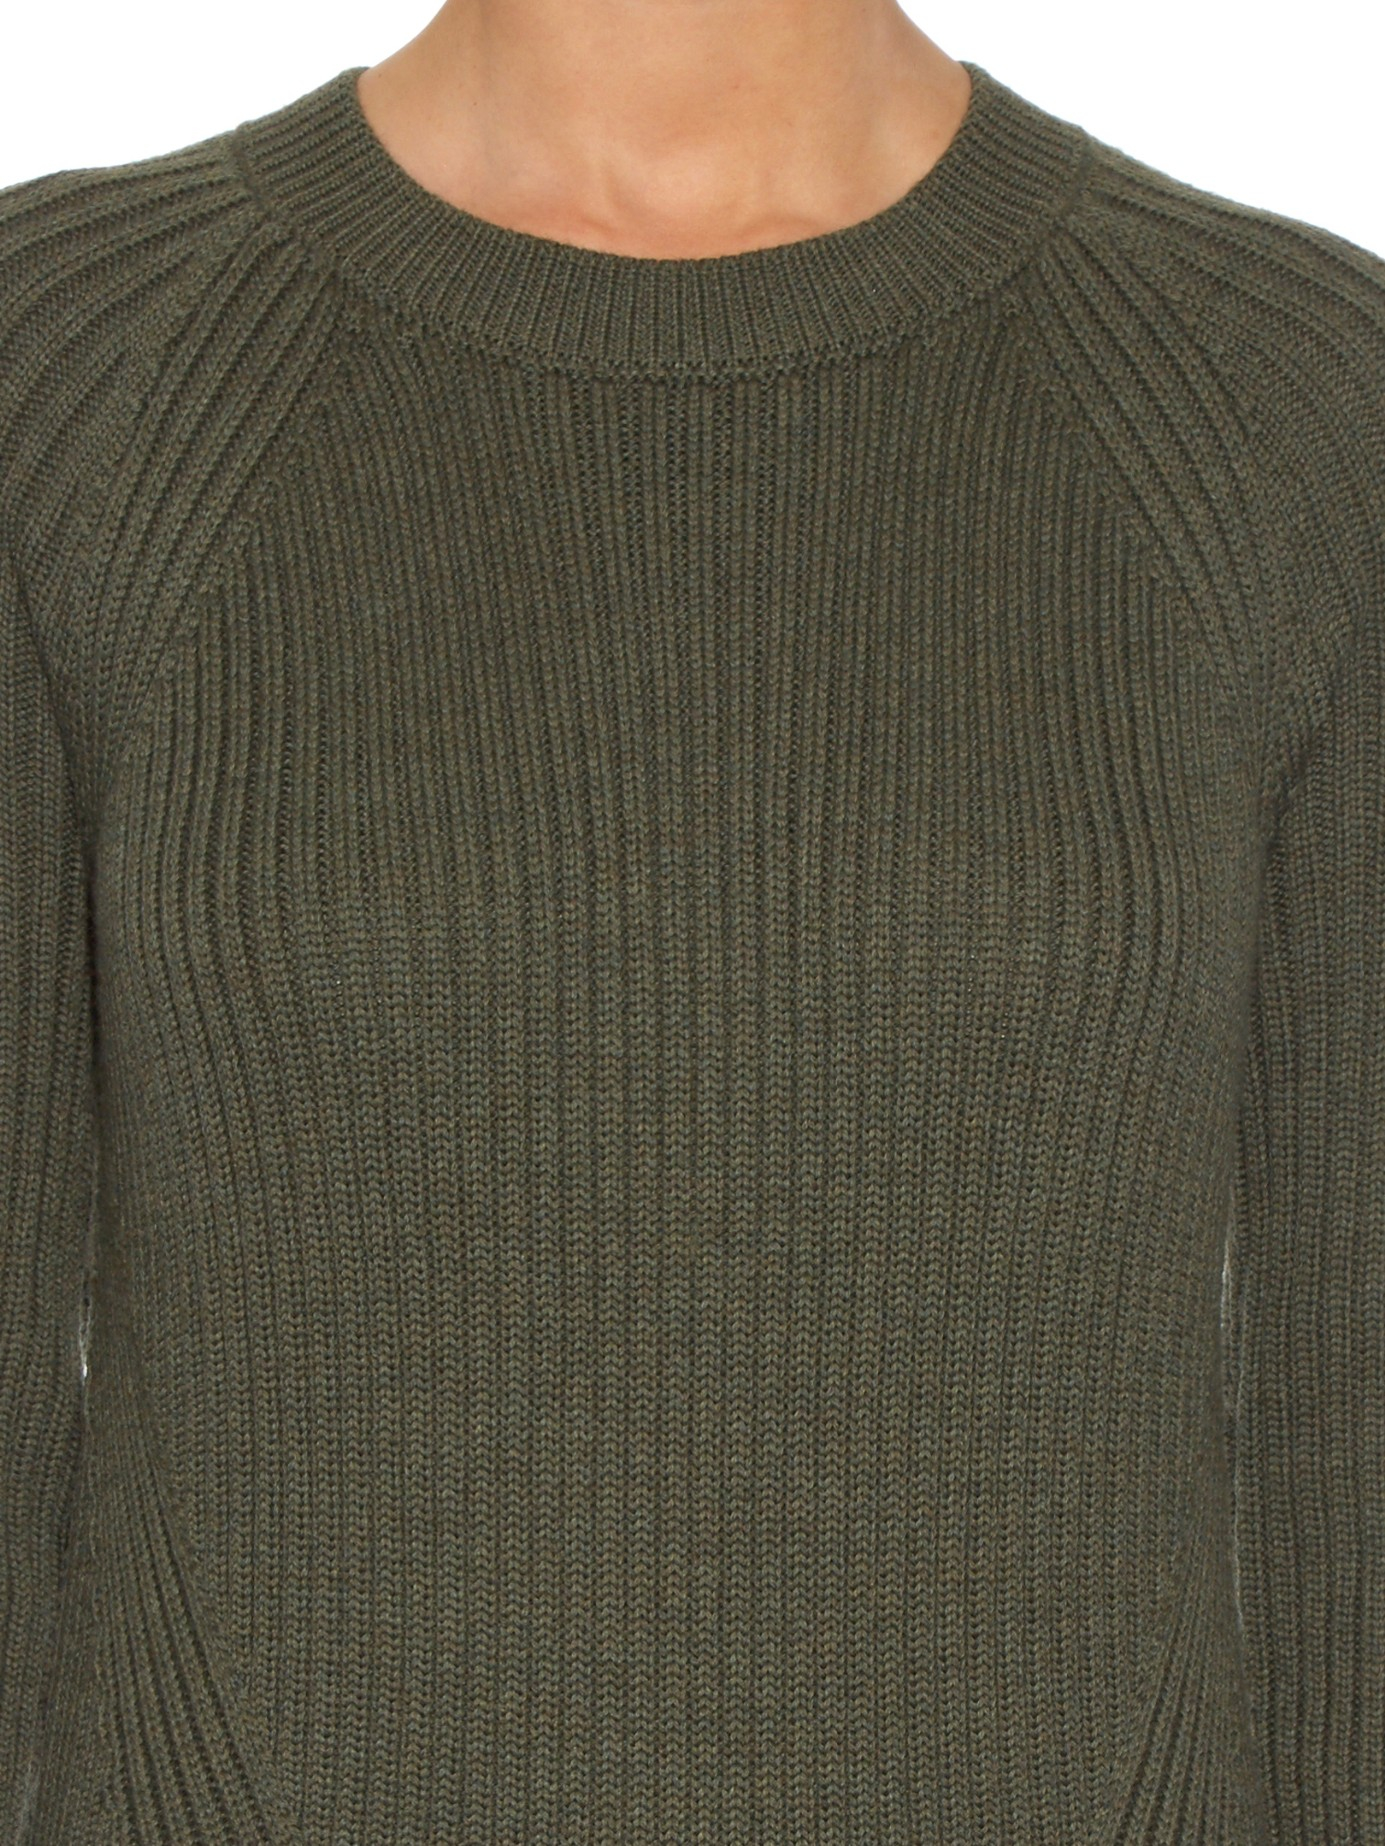 fcfb60a237814 Lyst - Trademark Crew-neck Ribbed-knit Sweater in Natural